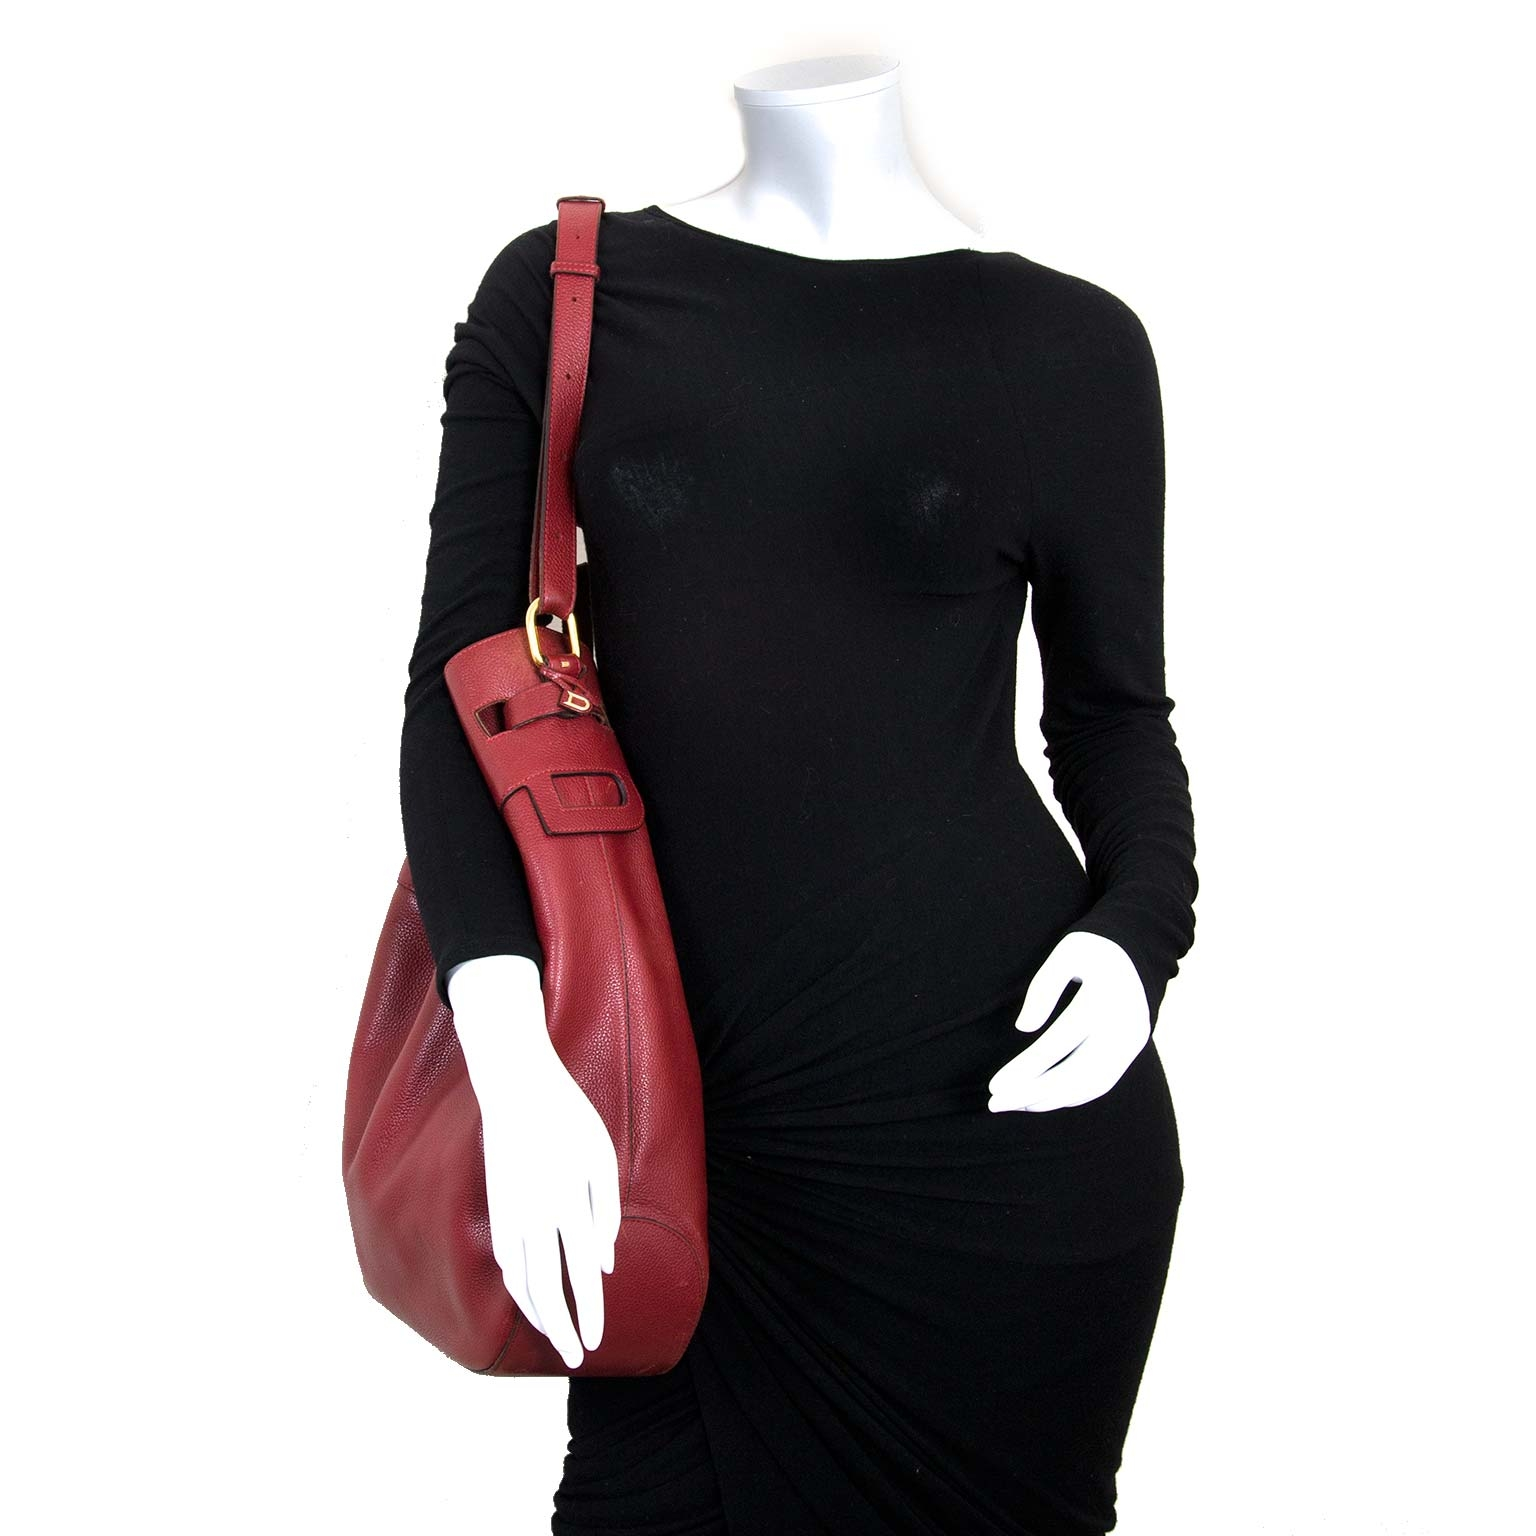 second hand authentic Delvaux Red Leather Catogan Trotteur Bag at labellov.com for the best price